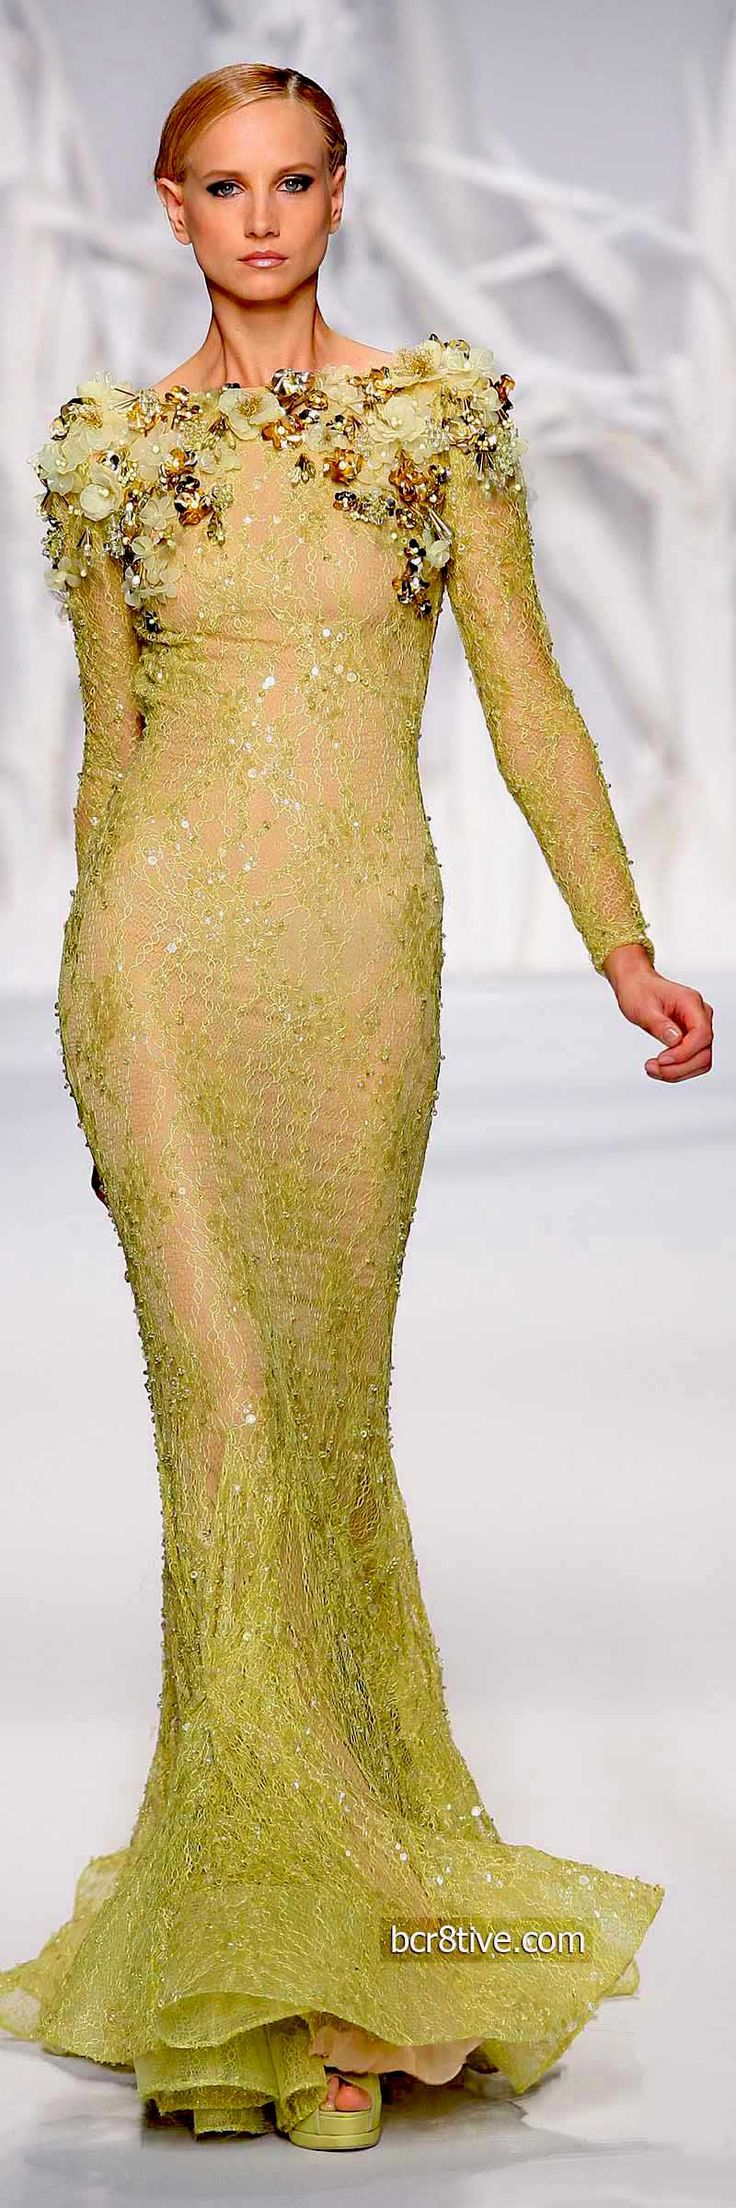 Abed Mahfouz Fall Winter 2014 Haute Couture Collection » bcr8tive